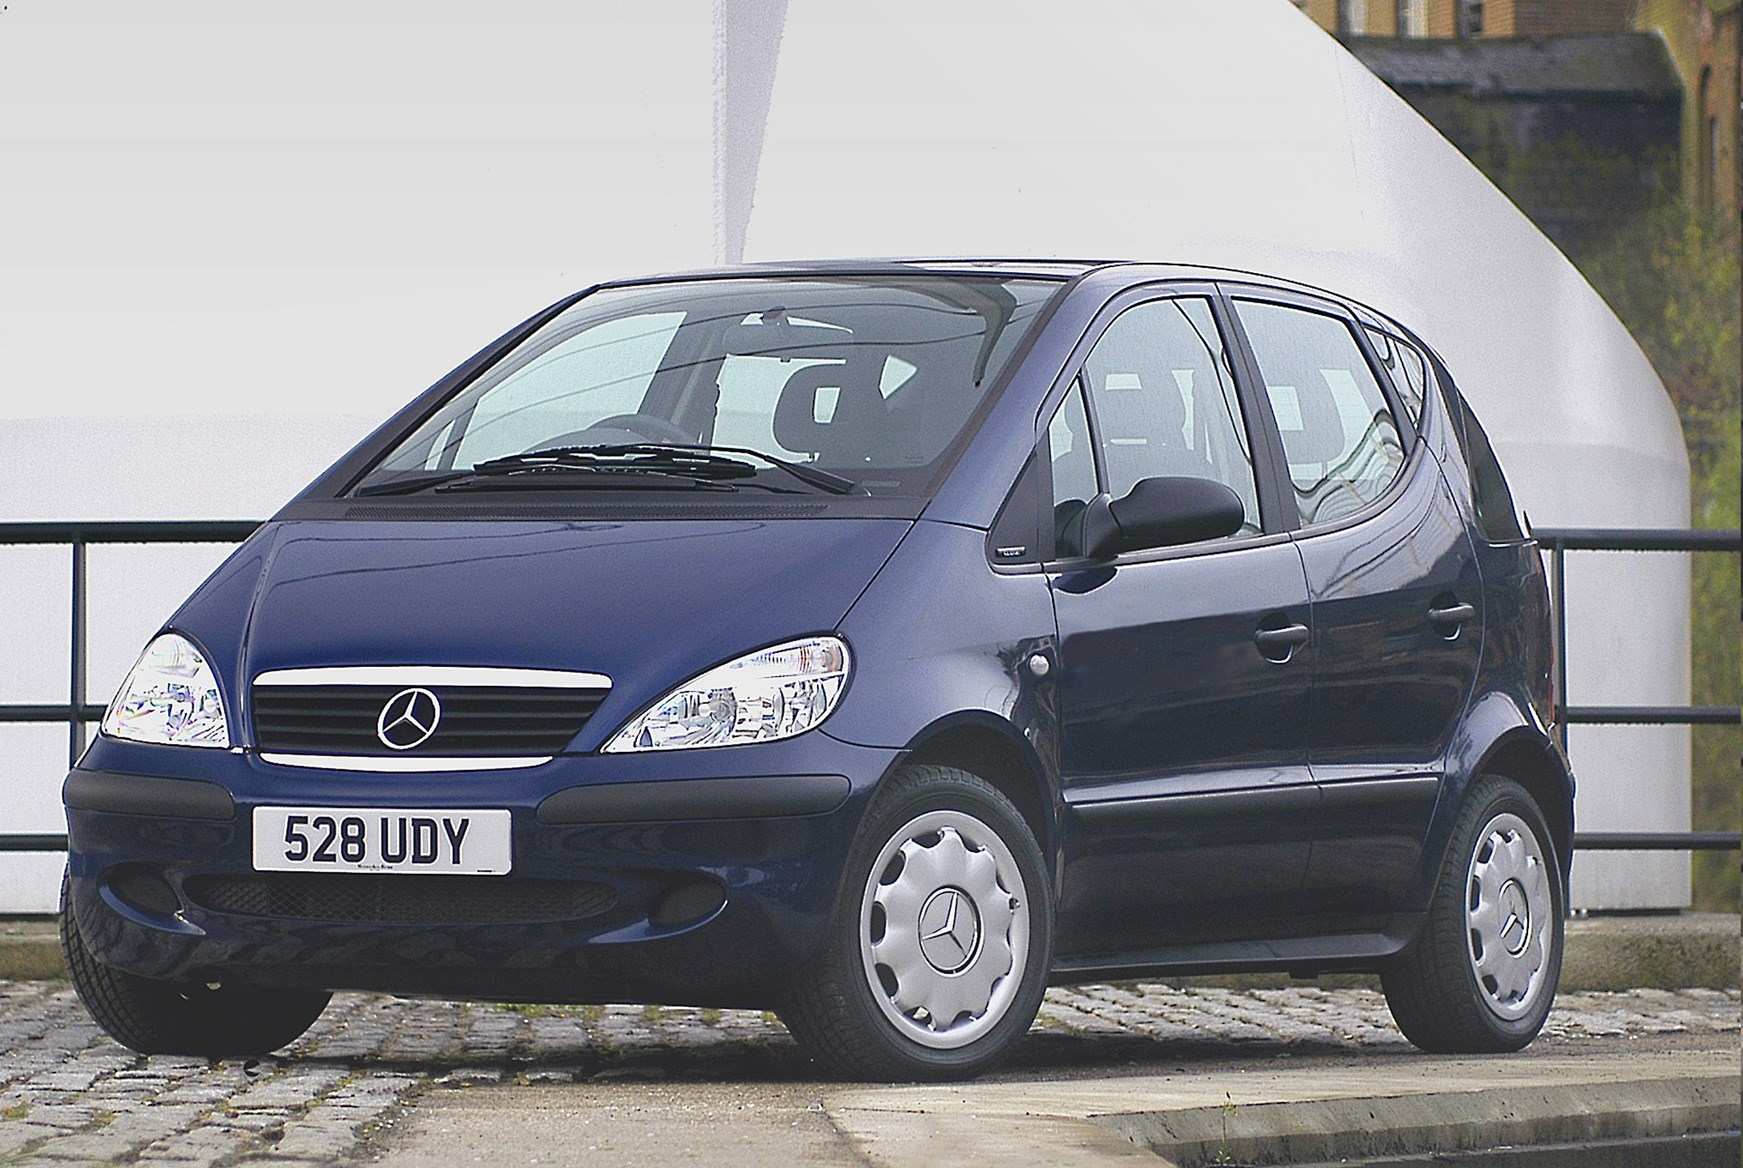 Mercedes benz a class hatchback review 1998 2004 parkers for Mercedes benz small car